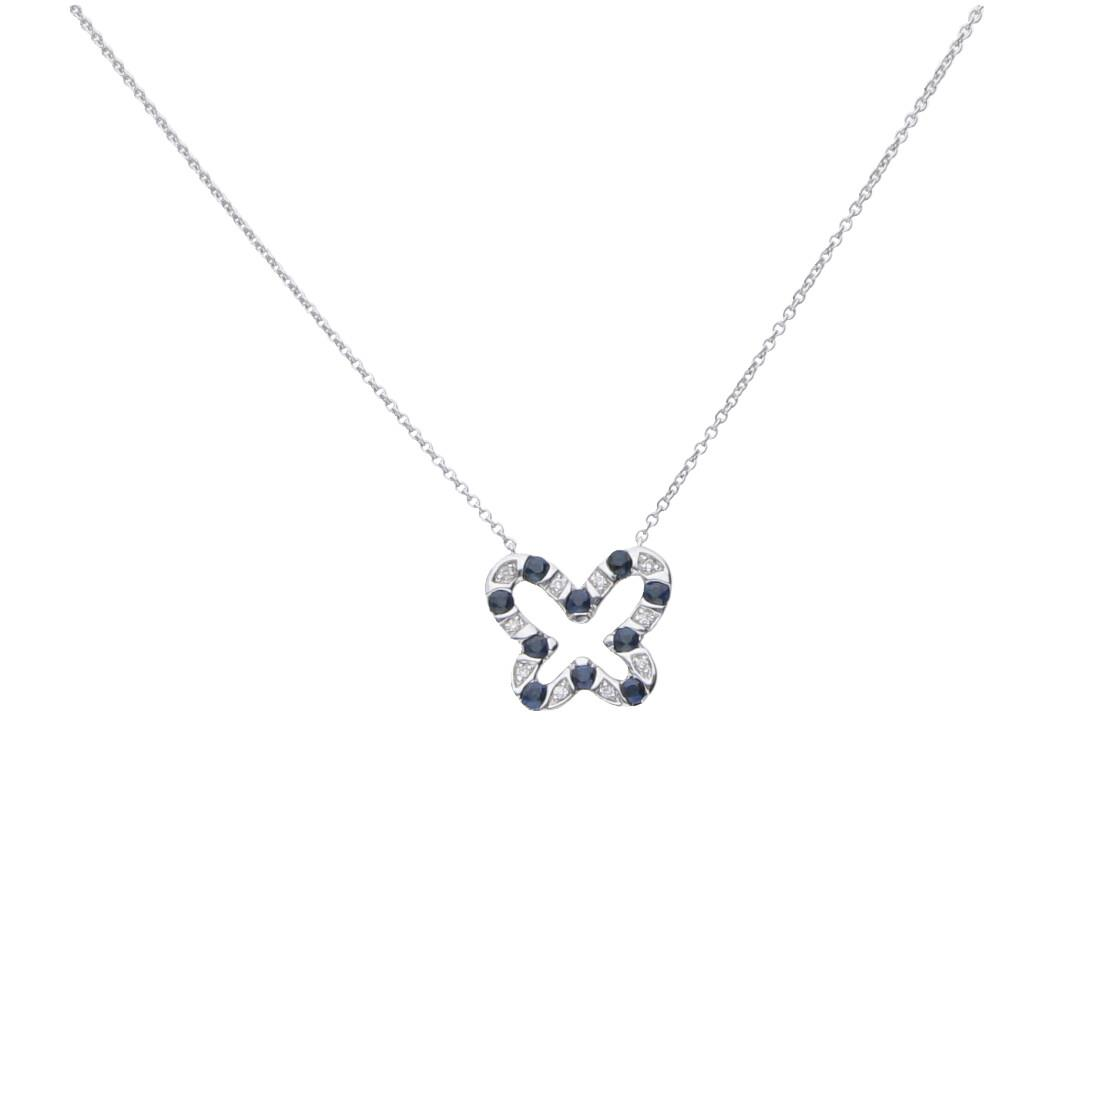 White gold necklace with pendant, sapphires and diamonds ct 0.03  - BLISS